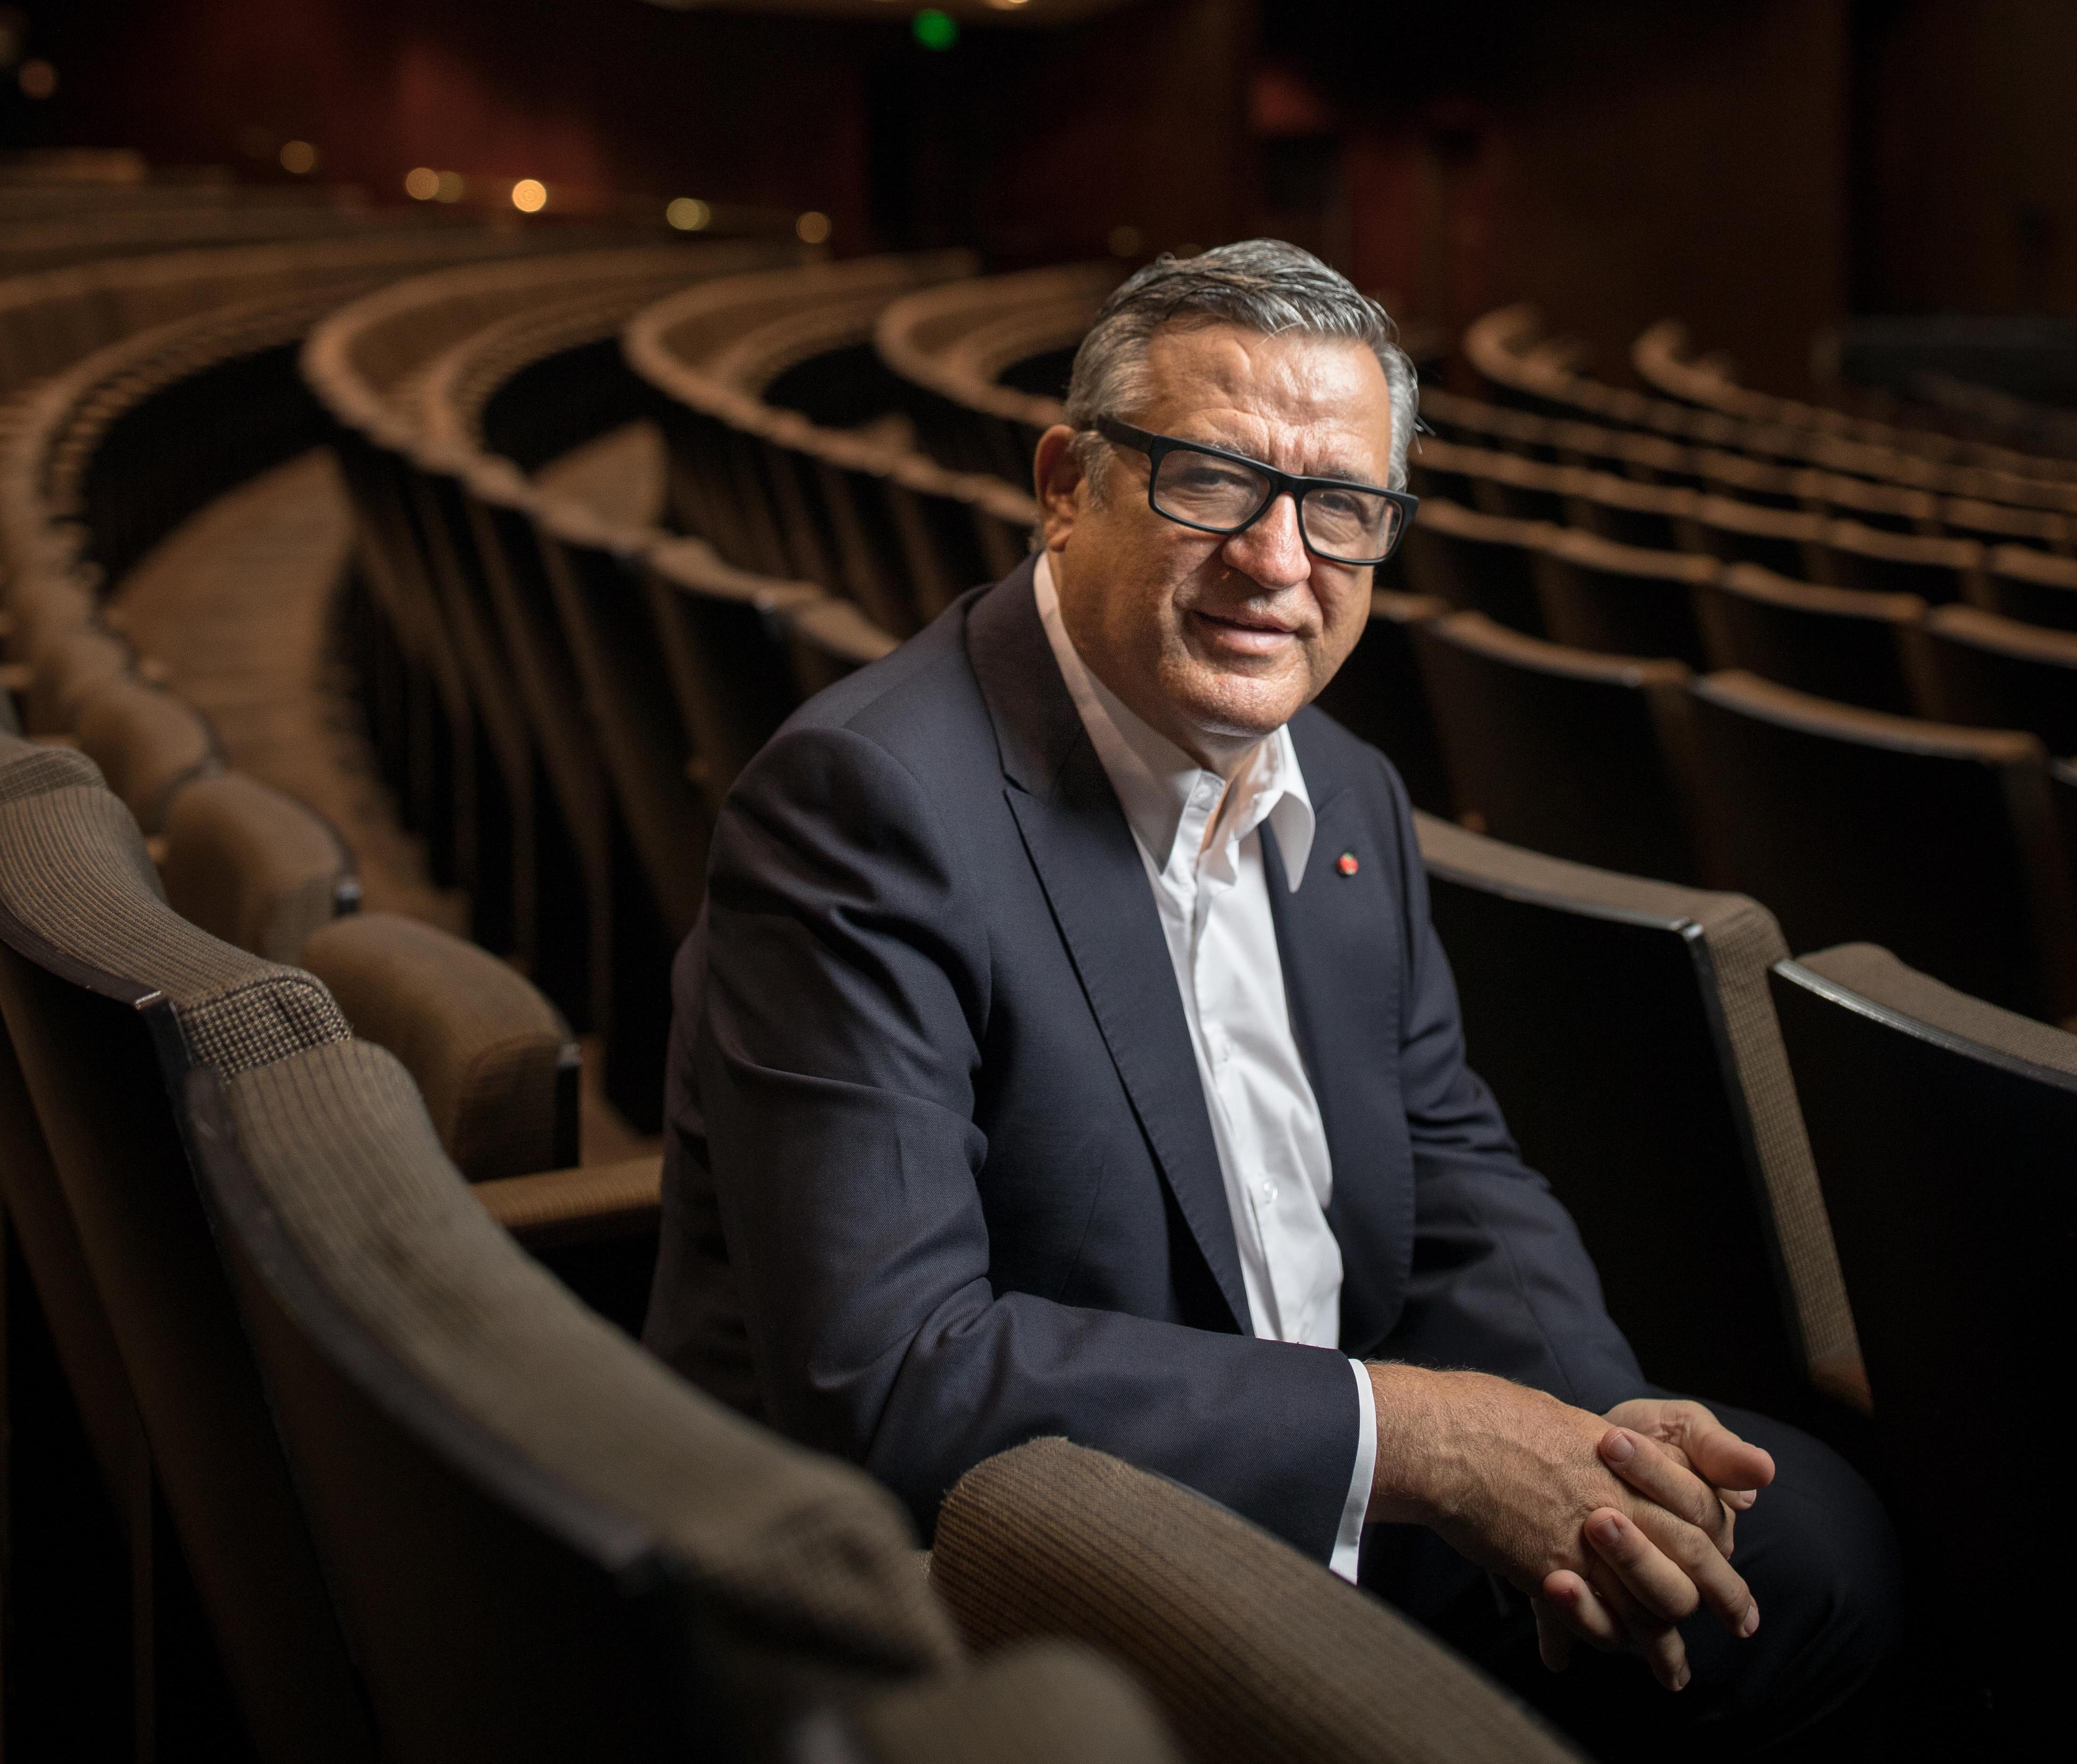 QPAC'S CHIEF EXECUTIVE JOHN KOTZAS RECOGNISED IN THE 2021 QUEEN'S BIRTHDAY HONOURS LIST